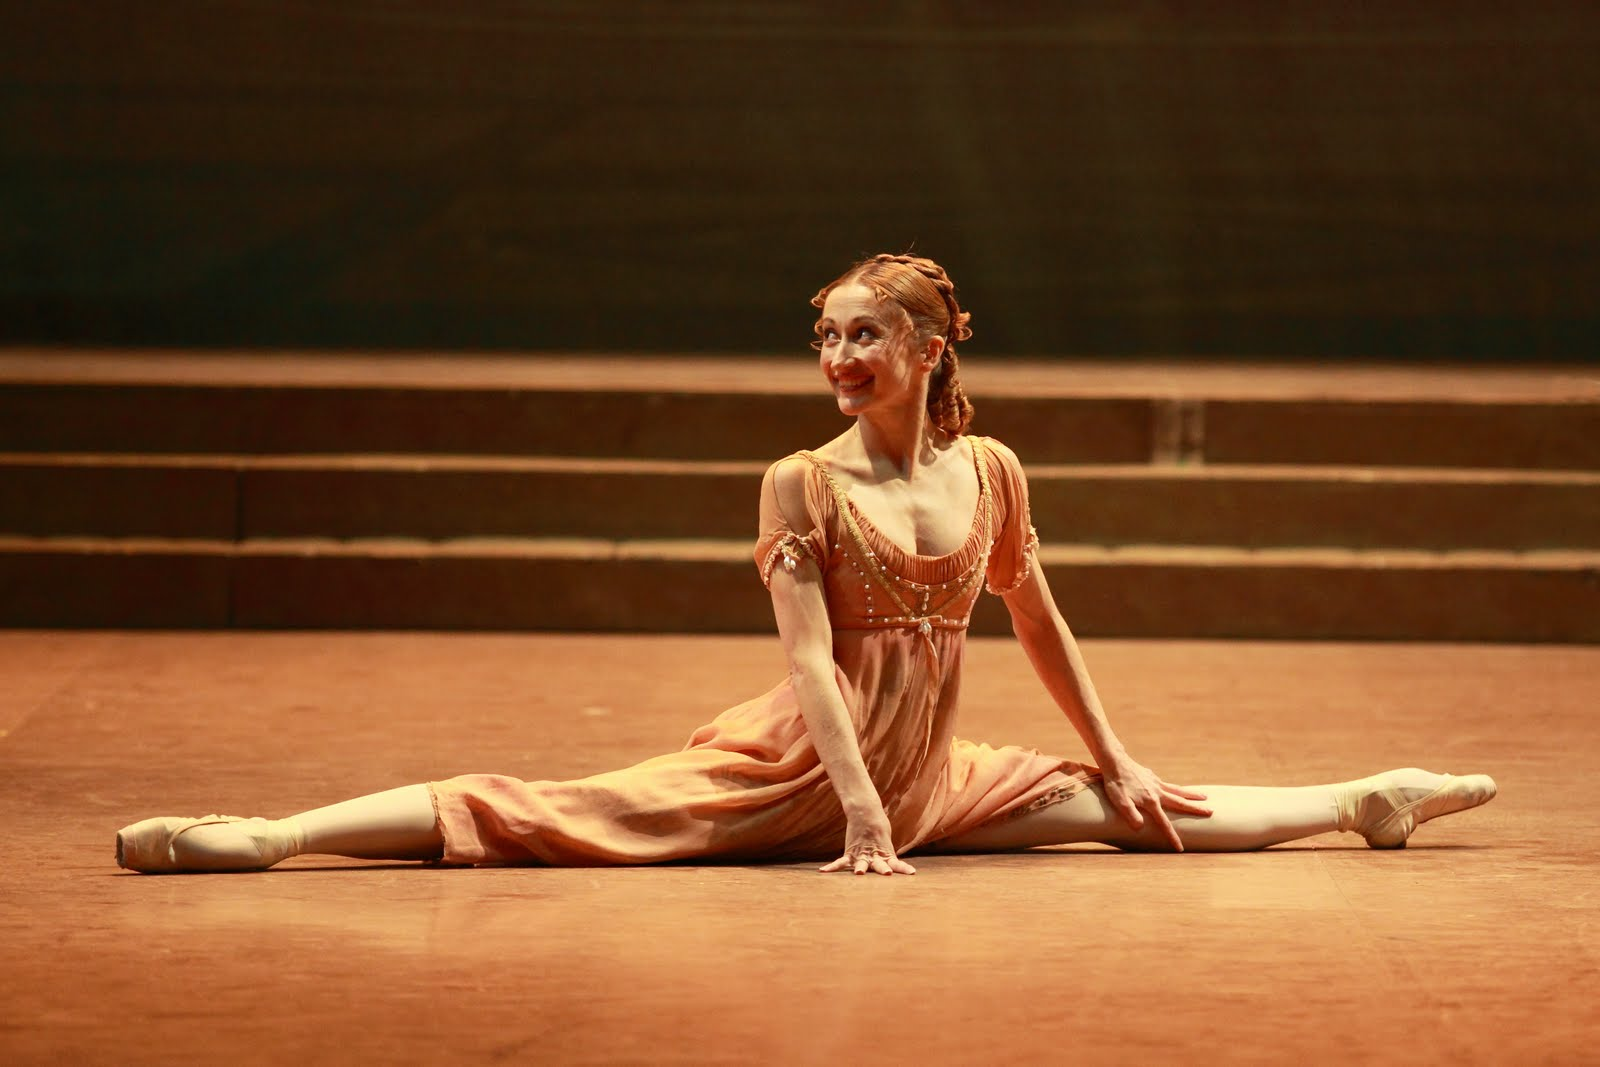 Daria Klimentova Prima Ballerina Of English National Ballet Talks To